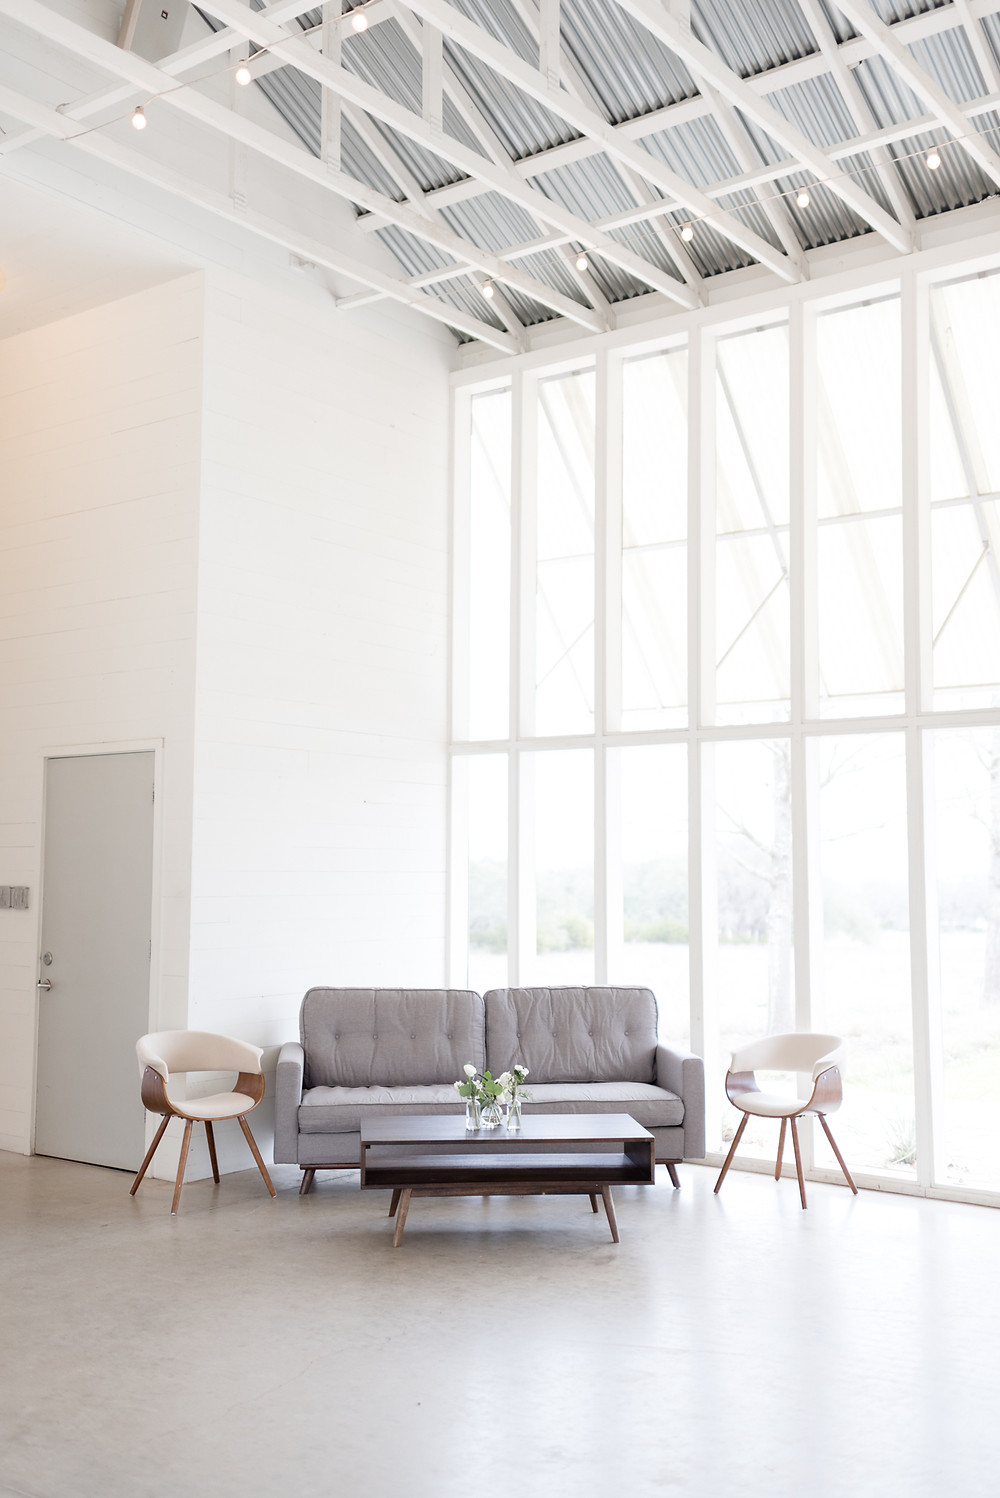 a bright, white room with tall windows, an industrial ceiling, and event rental furniture to decorate for a wedding